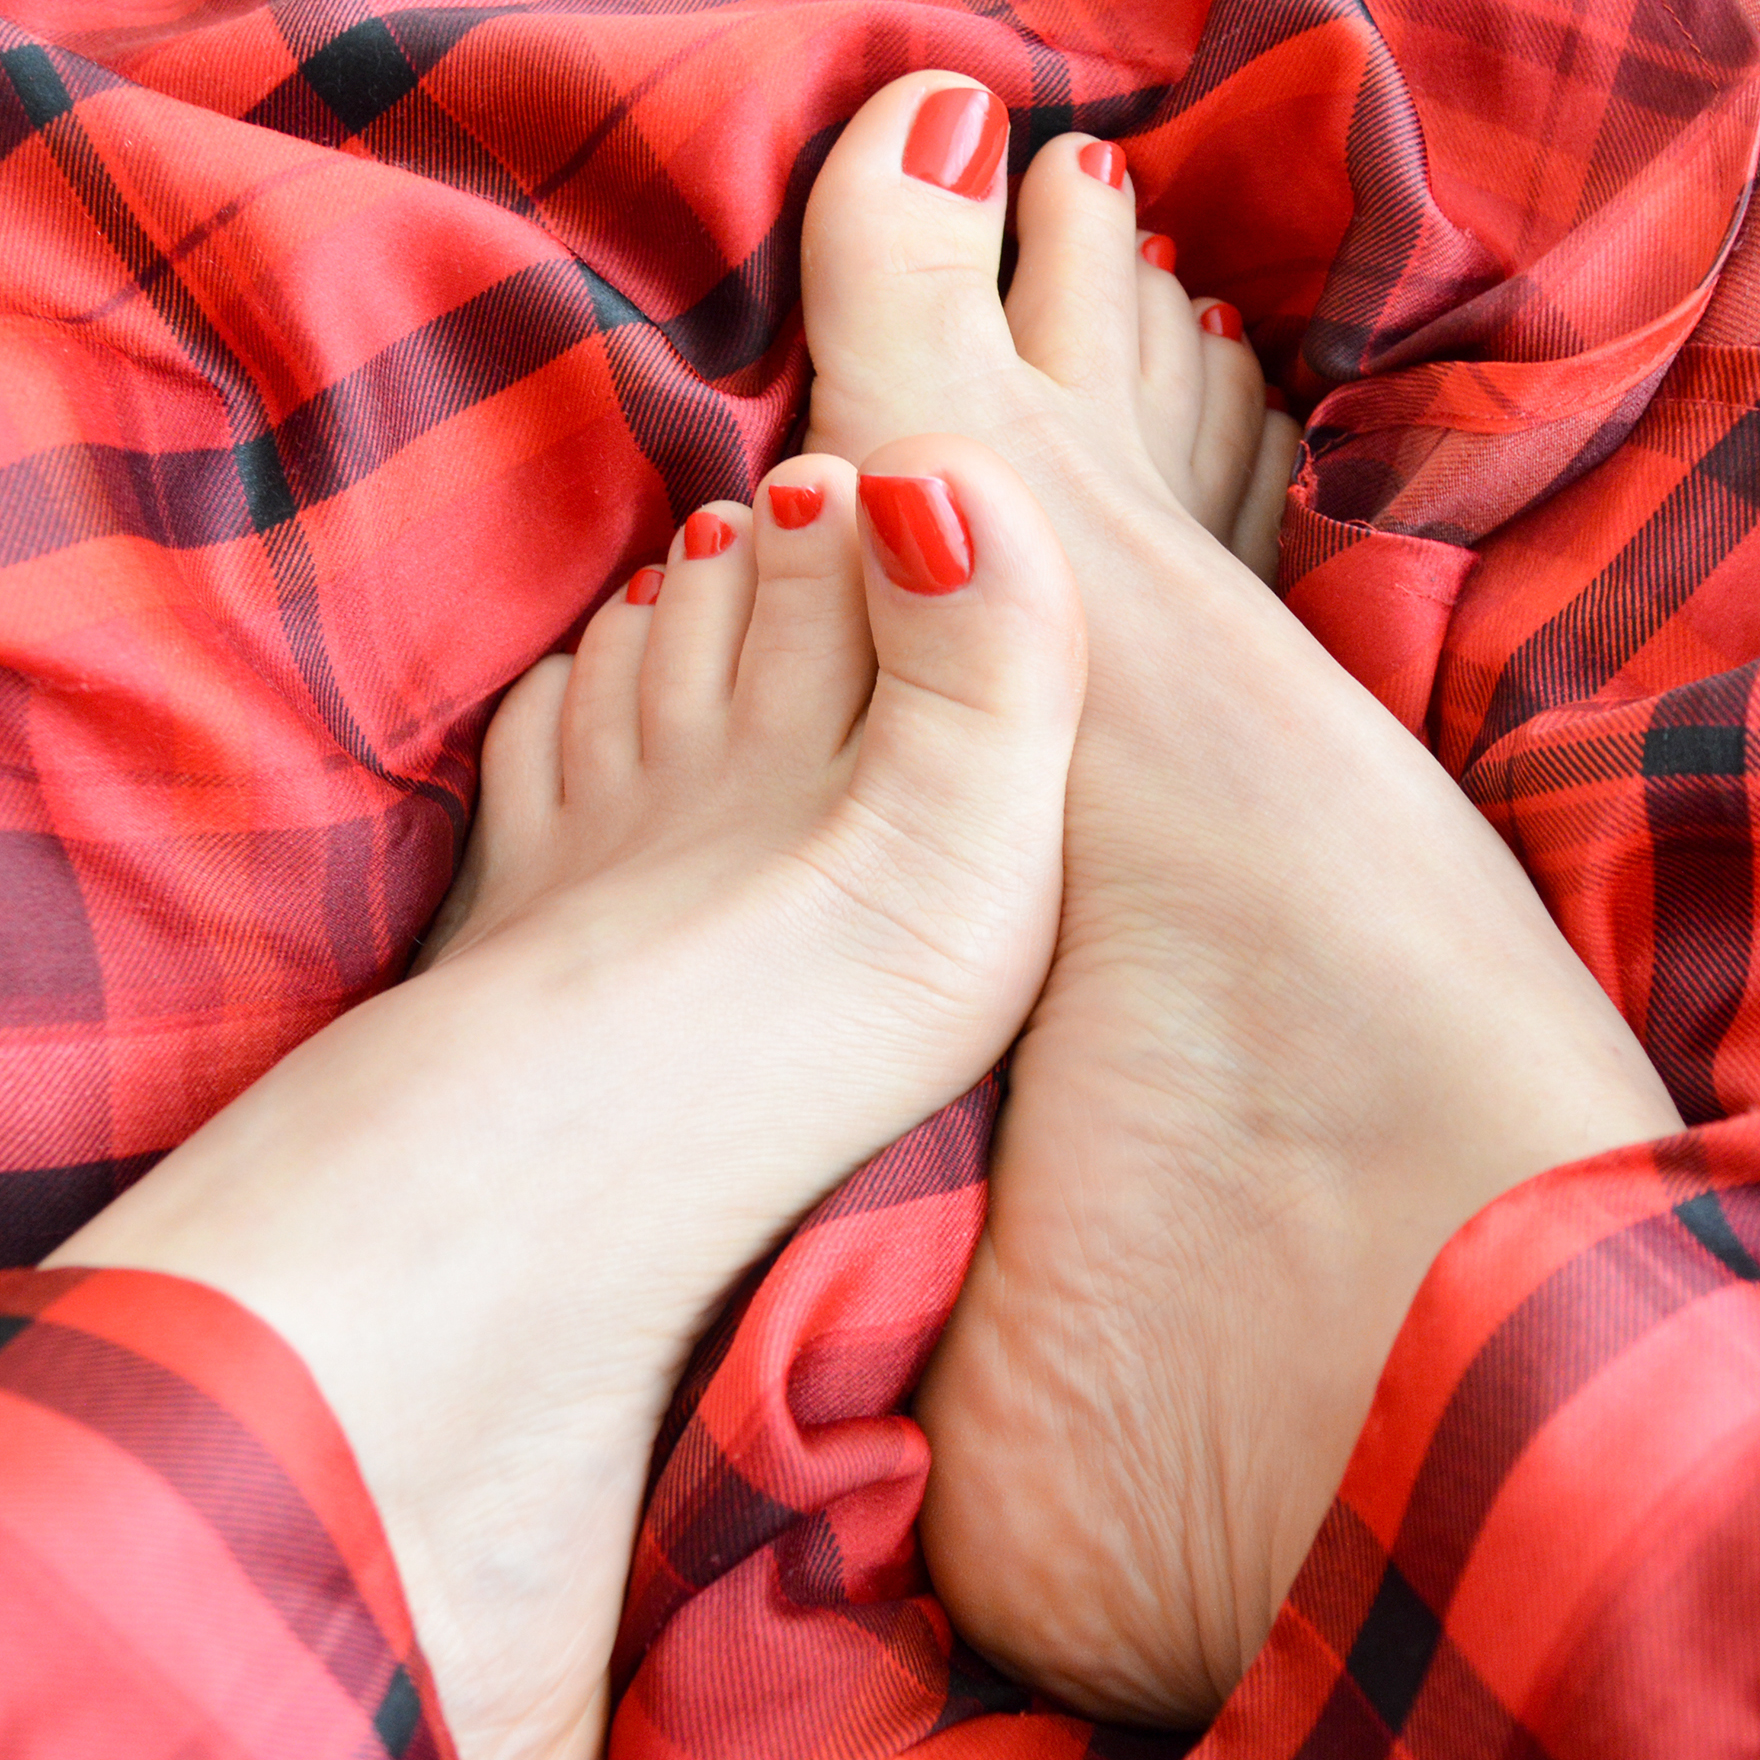 Foot Fetish Feet Red pedicure Toes